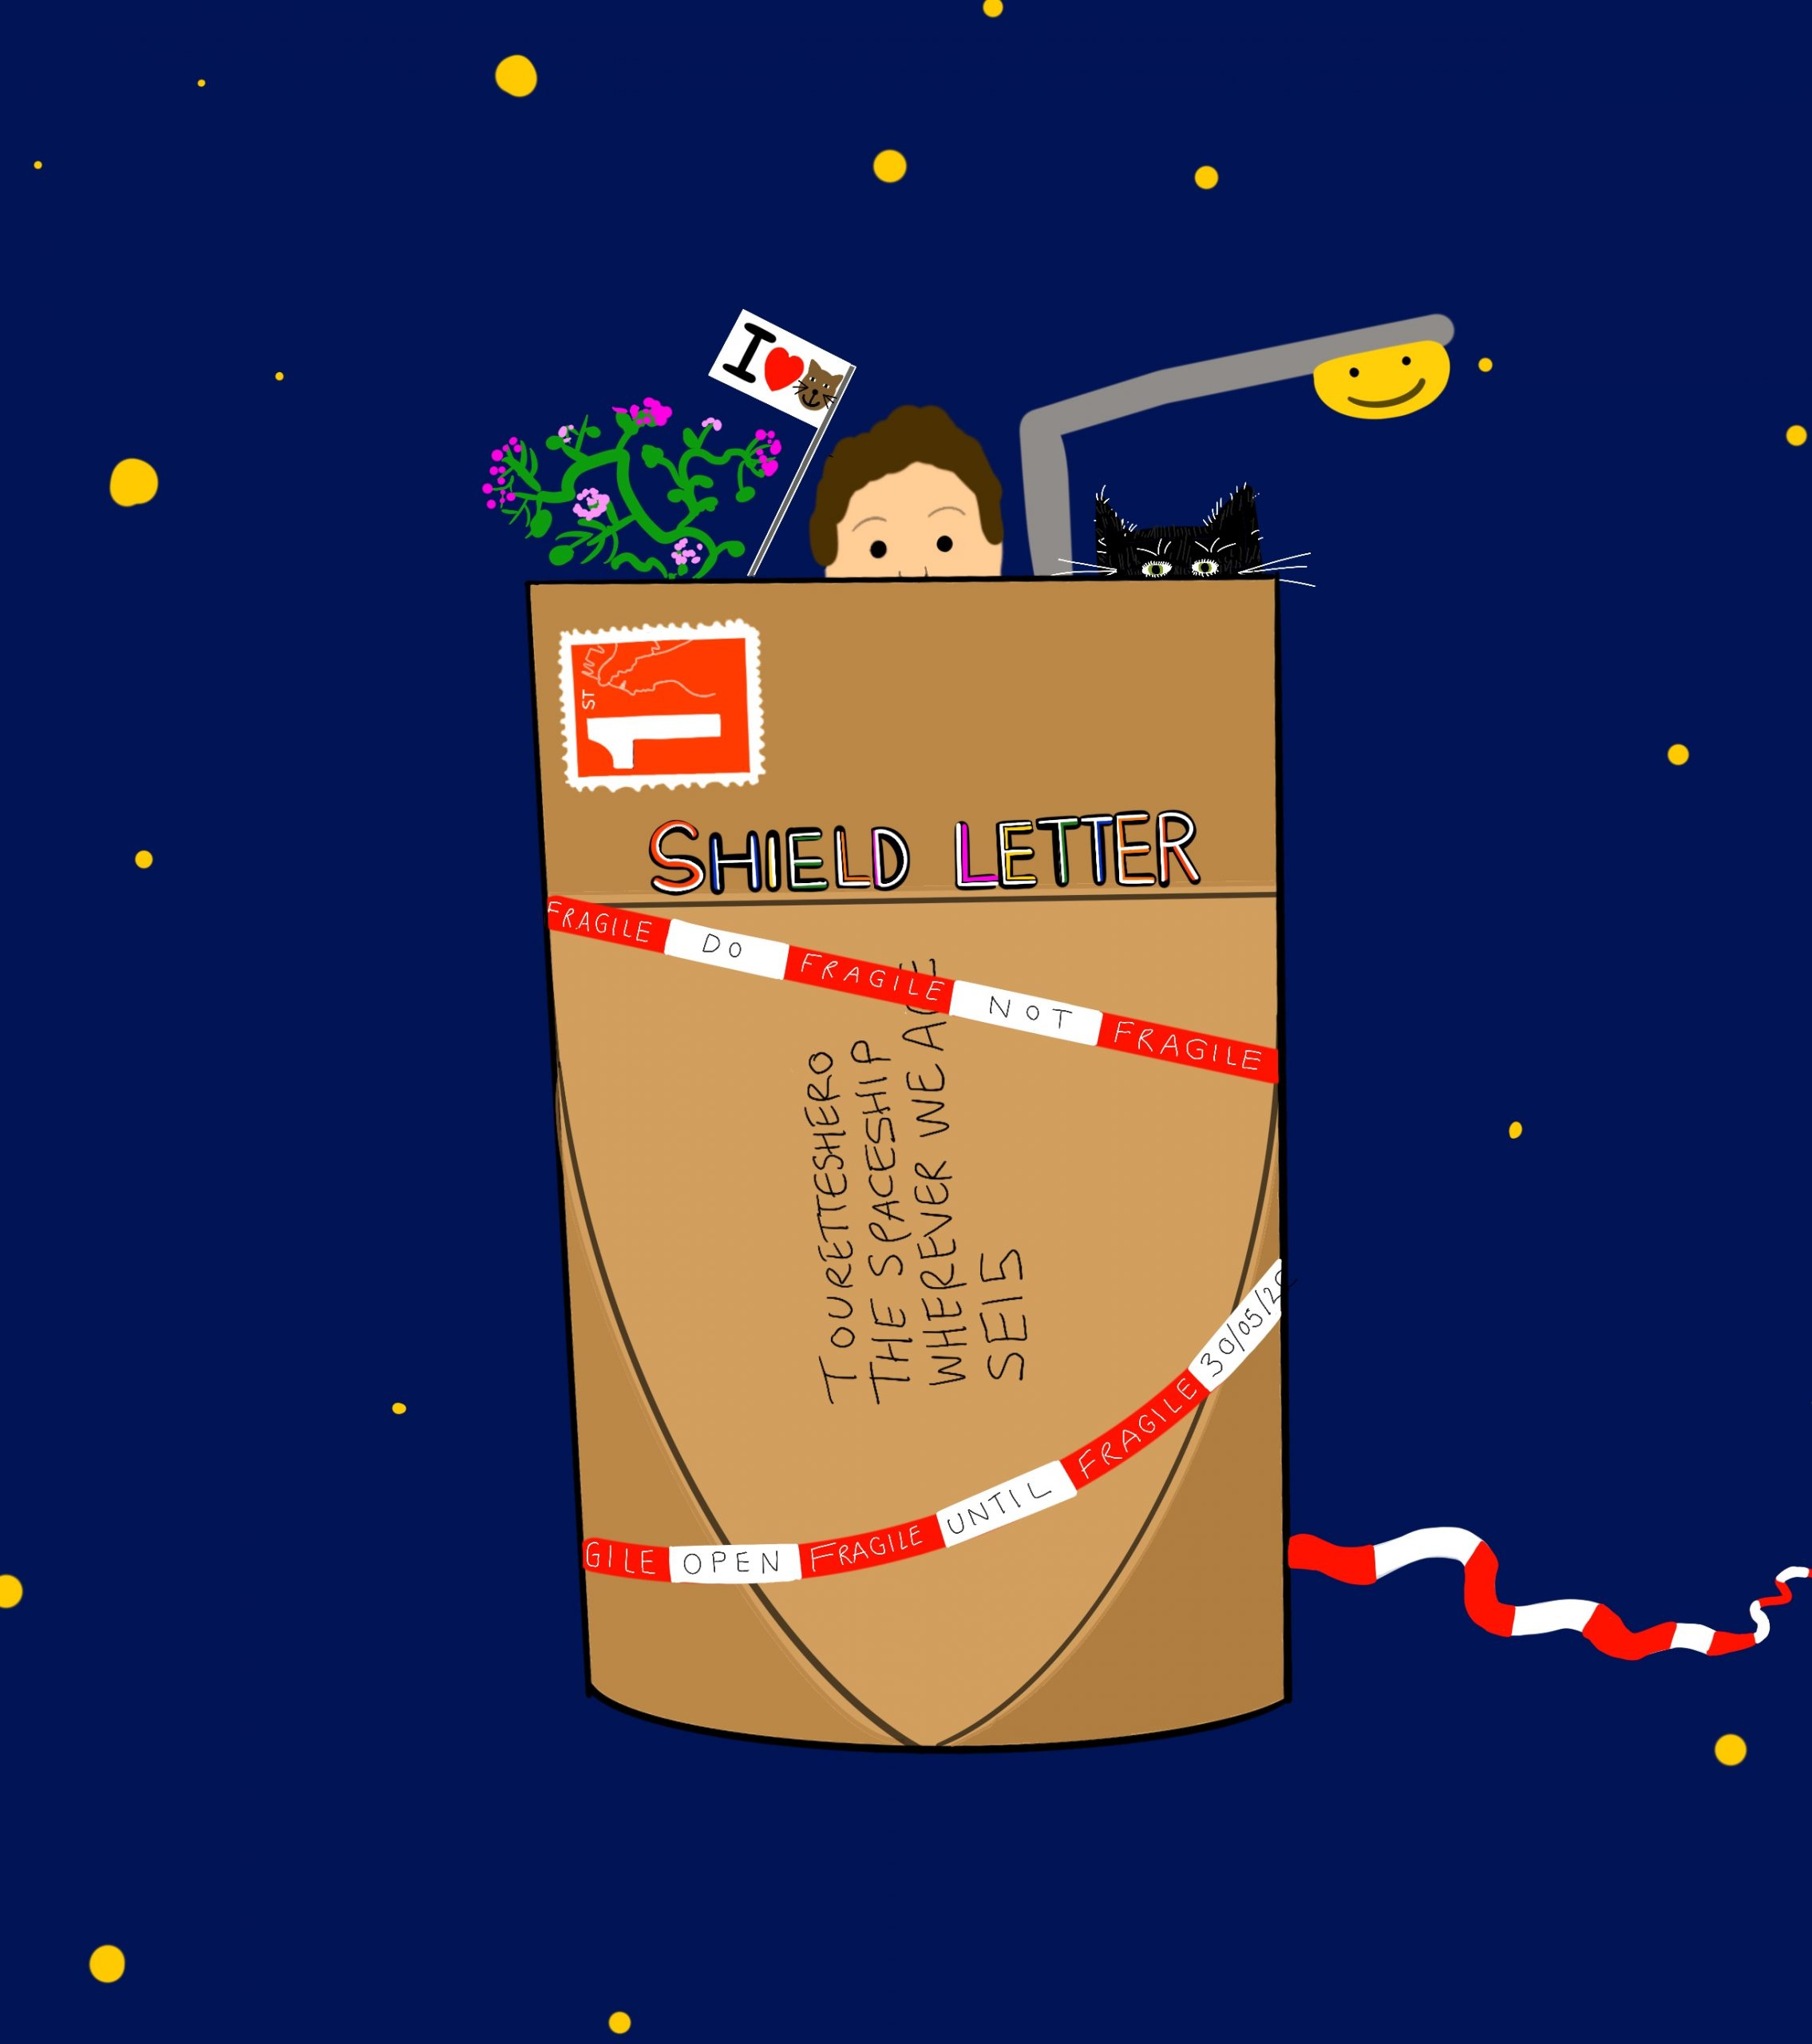 Image shows a digital drawing by Touretteshero. Backed onto a midnight blue background there is a brown envelope in the centre titled 'Shield Letter' with a red First Class Royal Mail stamp in the corner with Touretteshero's address: 'Touretteshero, The Spaceship, Wherever We Are, SE15'. The brown envelope is wrapped in red and white striped caution tape with the words 'Fragile', 'Open', 'Until', '30/05/20' At the top of the letter, Touretteshero, Monkey the cat, the lamp post, the geranium and a flag that says 'I', a heart emoji and a cat emoji.